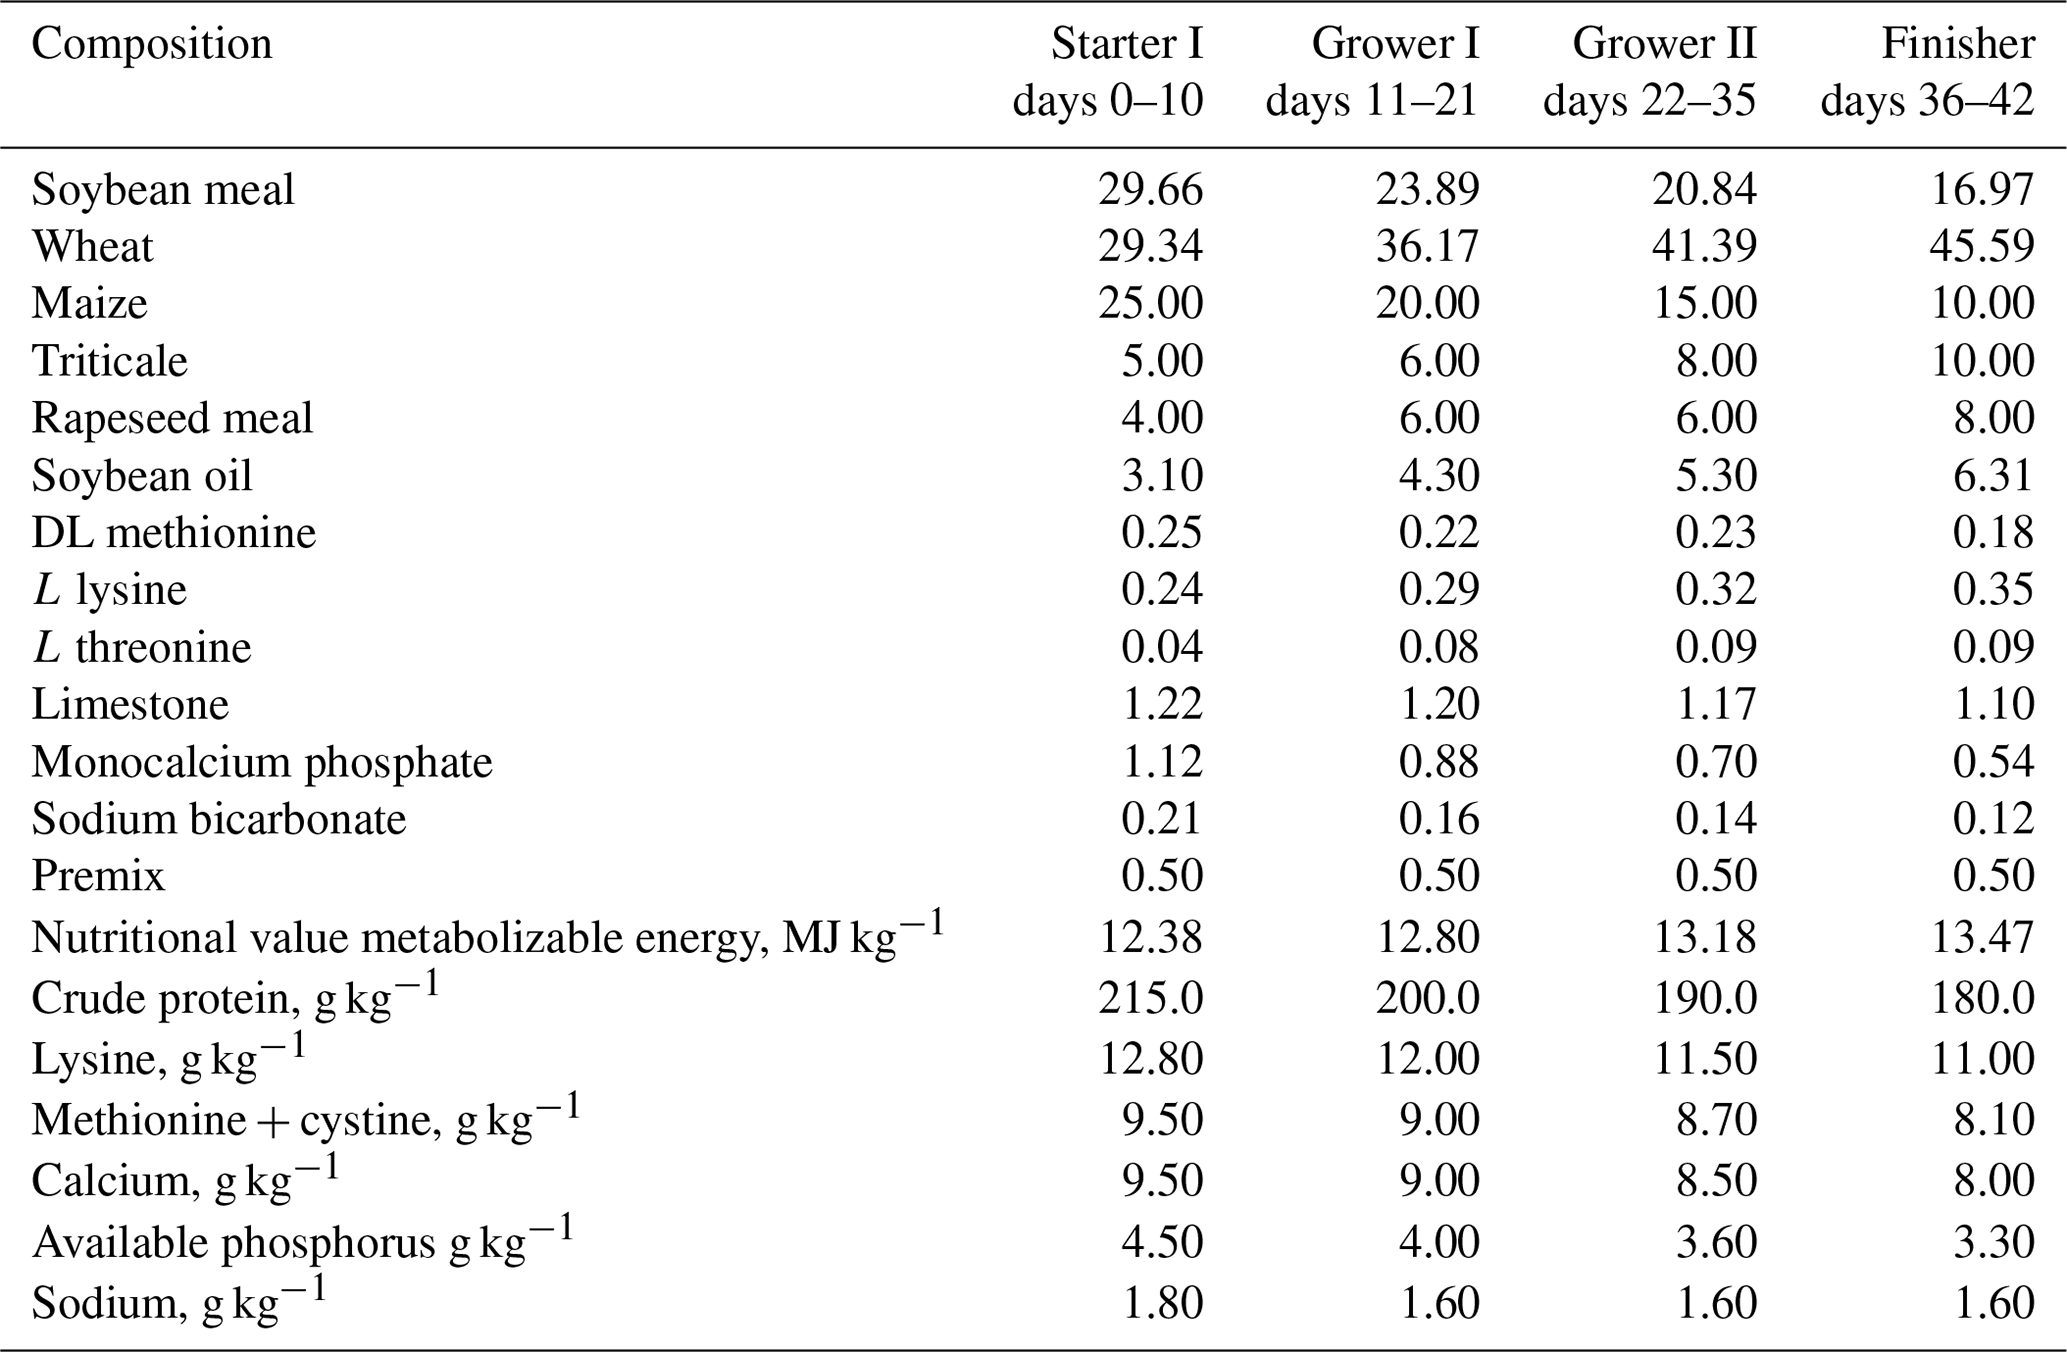 AAB - The effect of herbal feed additive on the growth